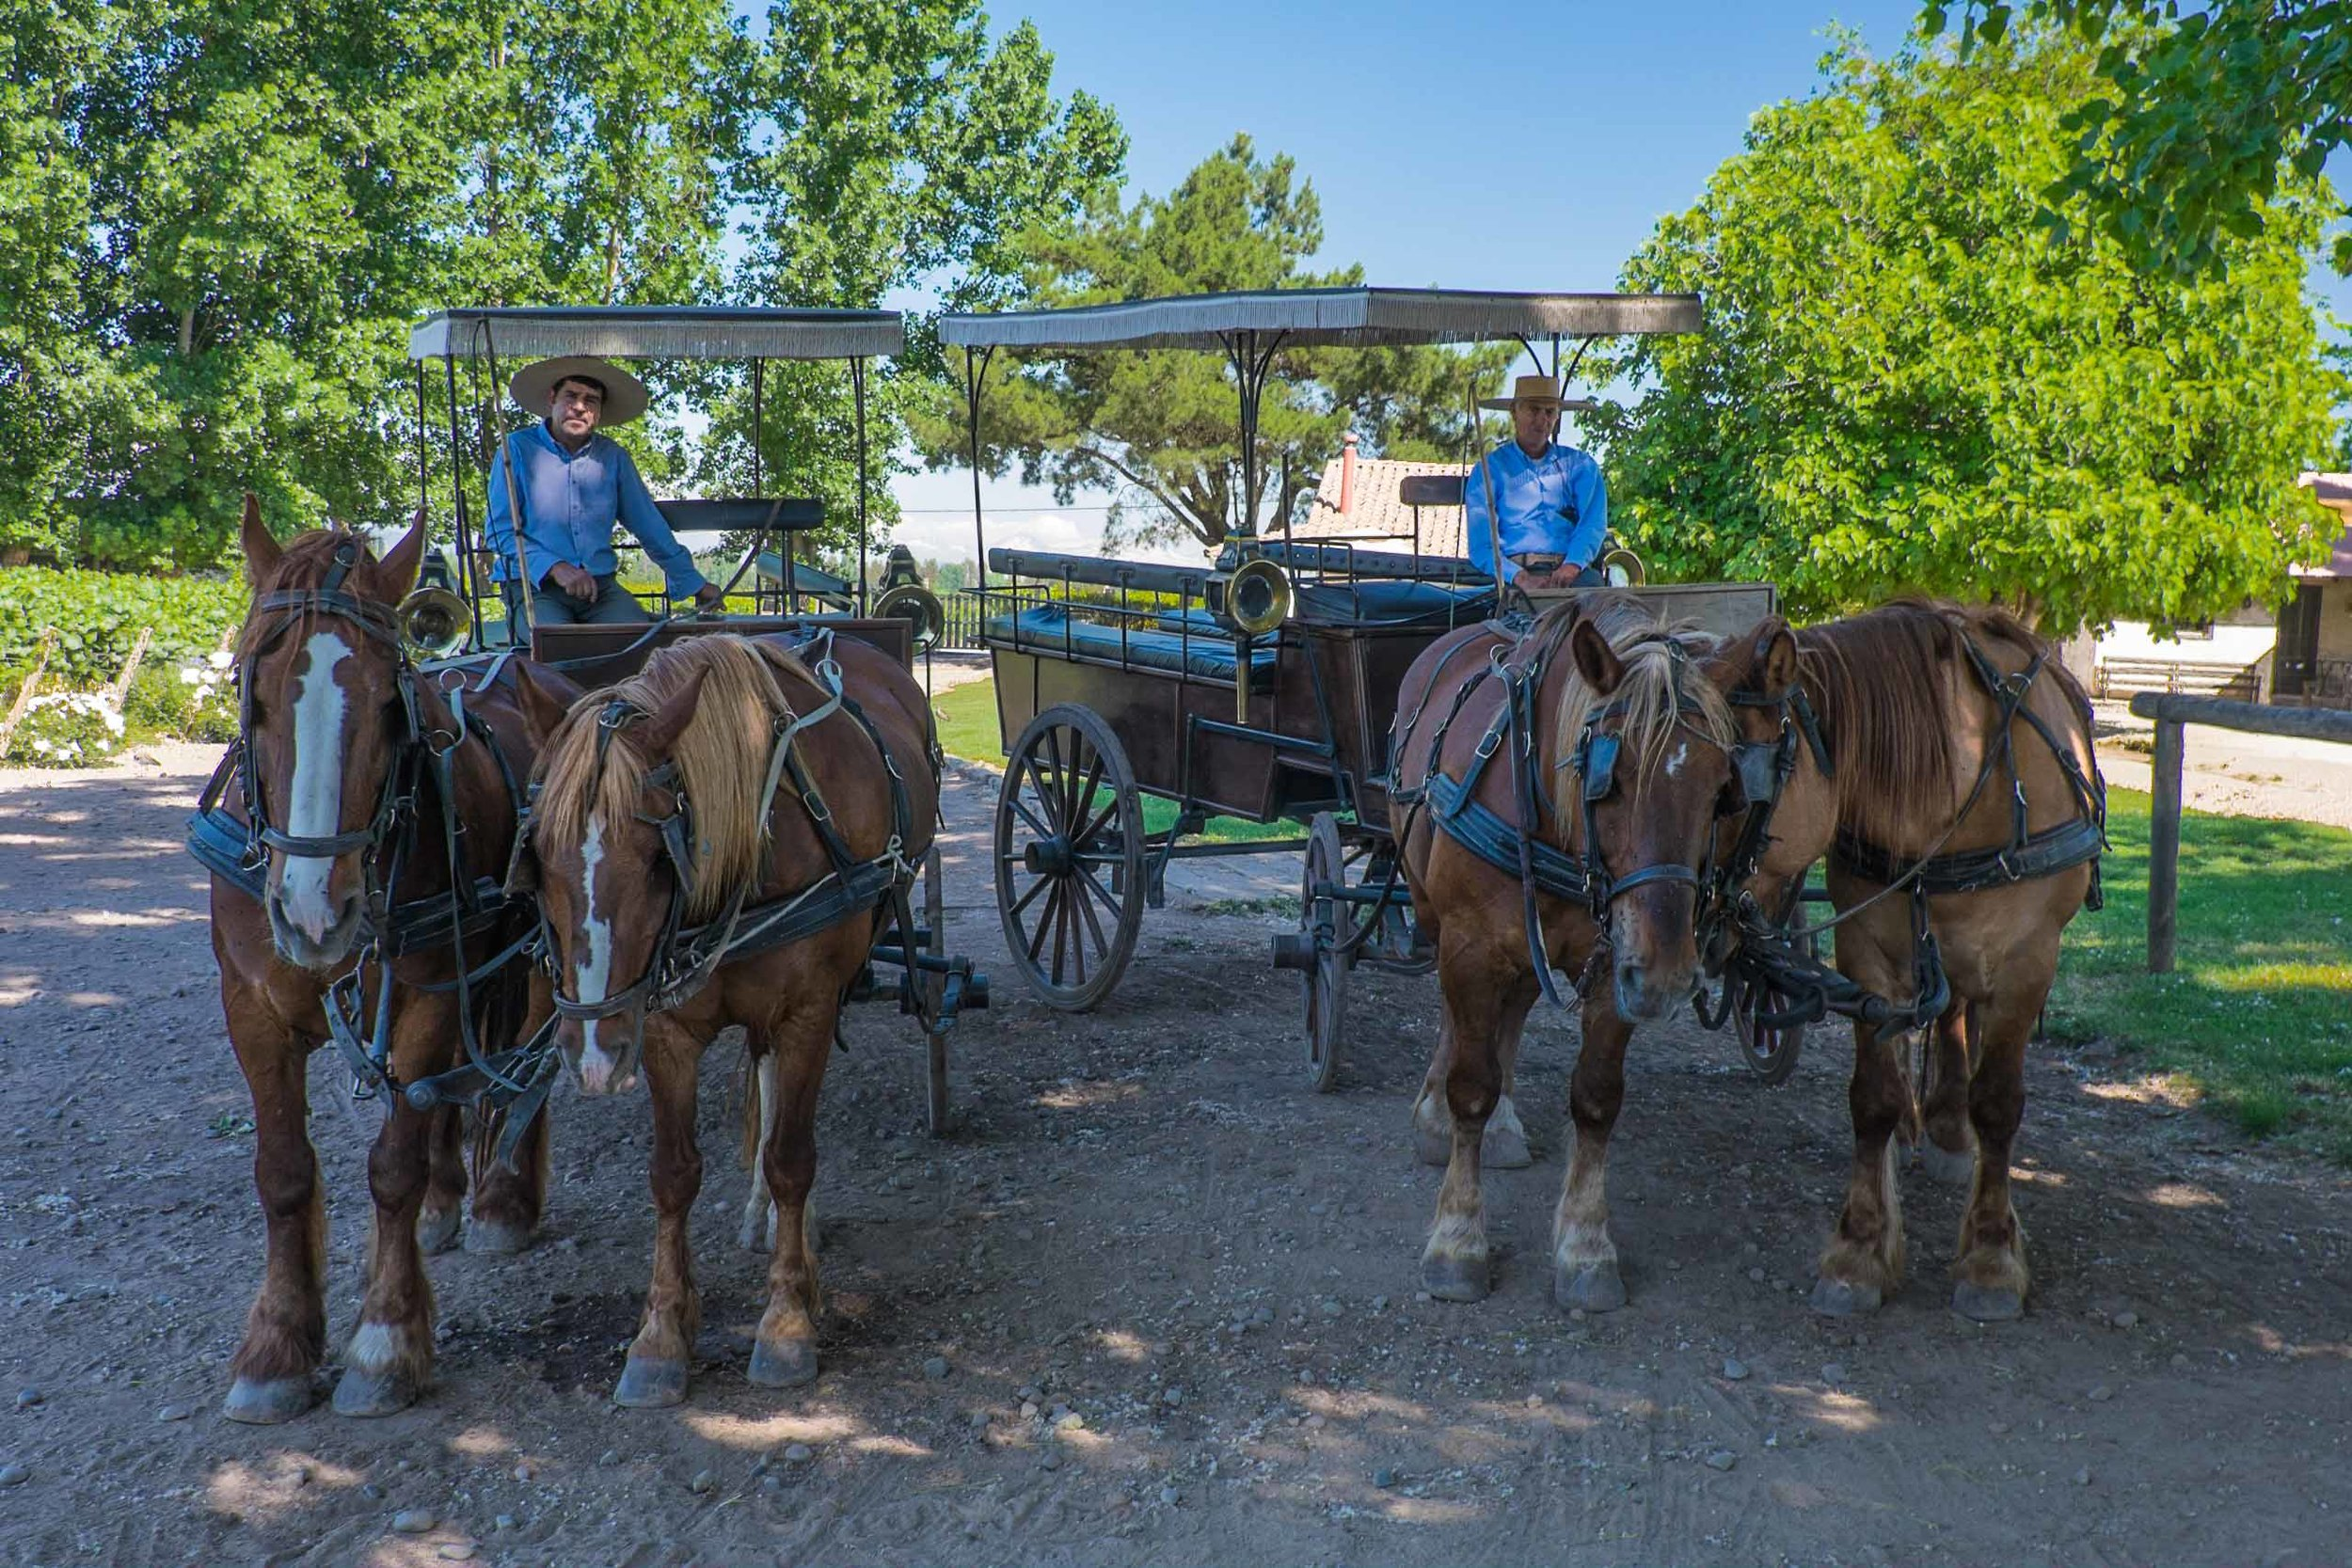 Horse carts, Viu Manent |  ©John Szabo (published by Jacqui Small)